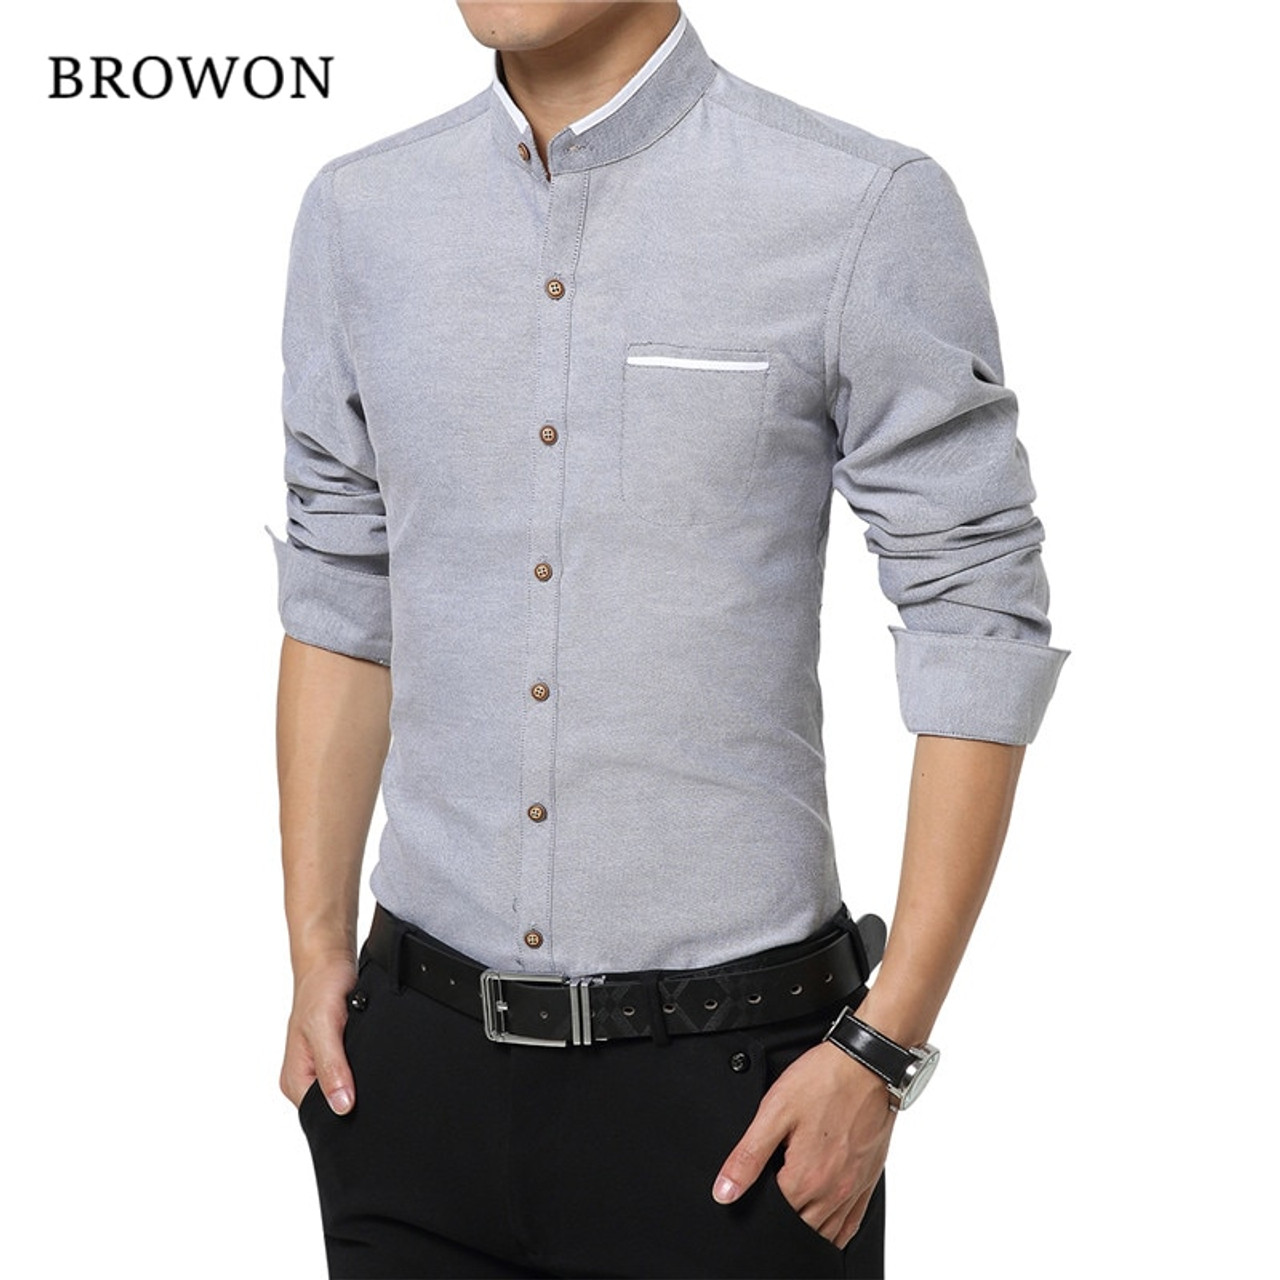 9d650e7fa6391 Browon Mens Dress Shirts M-5XL Fashion Casual Men Shirt Long Sleeve  Mandarin Collar Slim Fit Shirt Men Korean Business